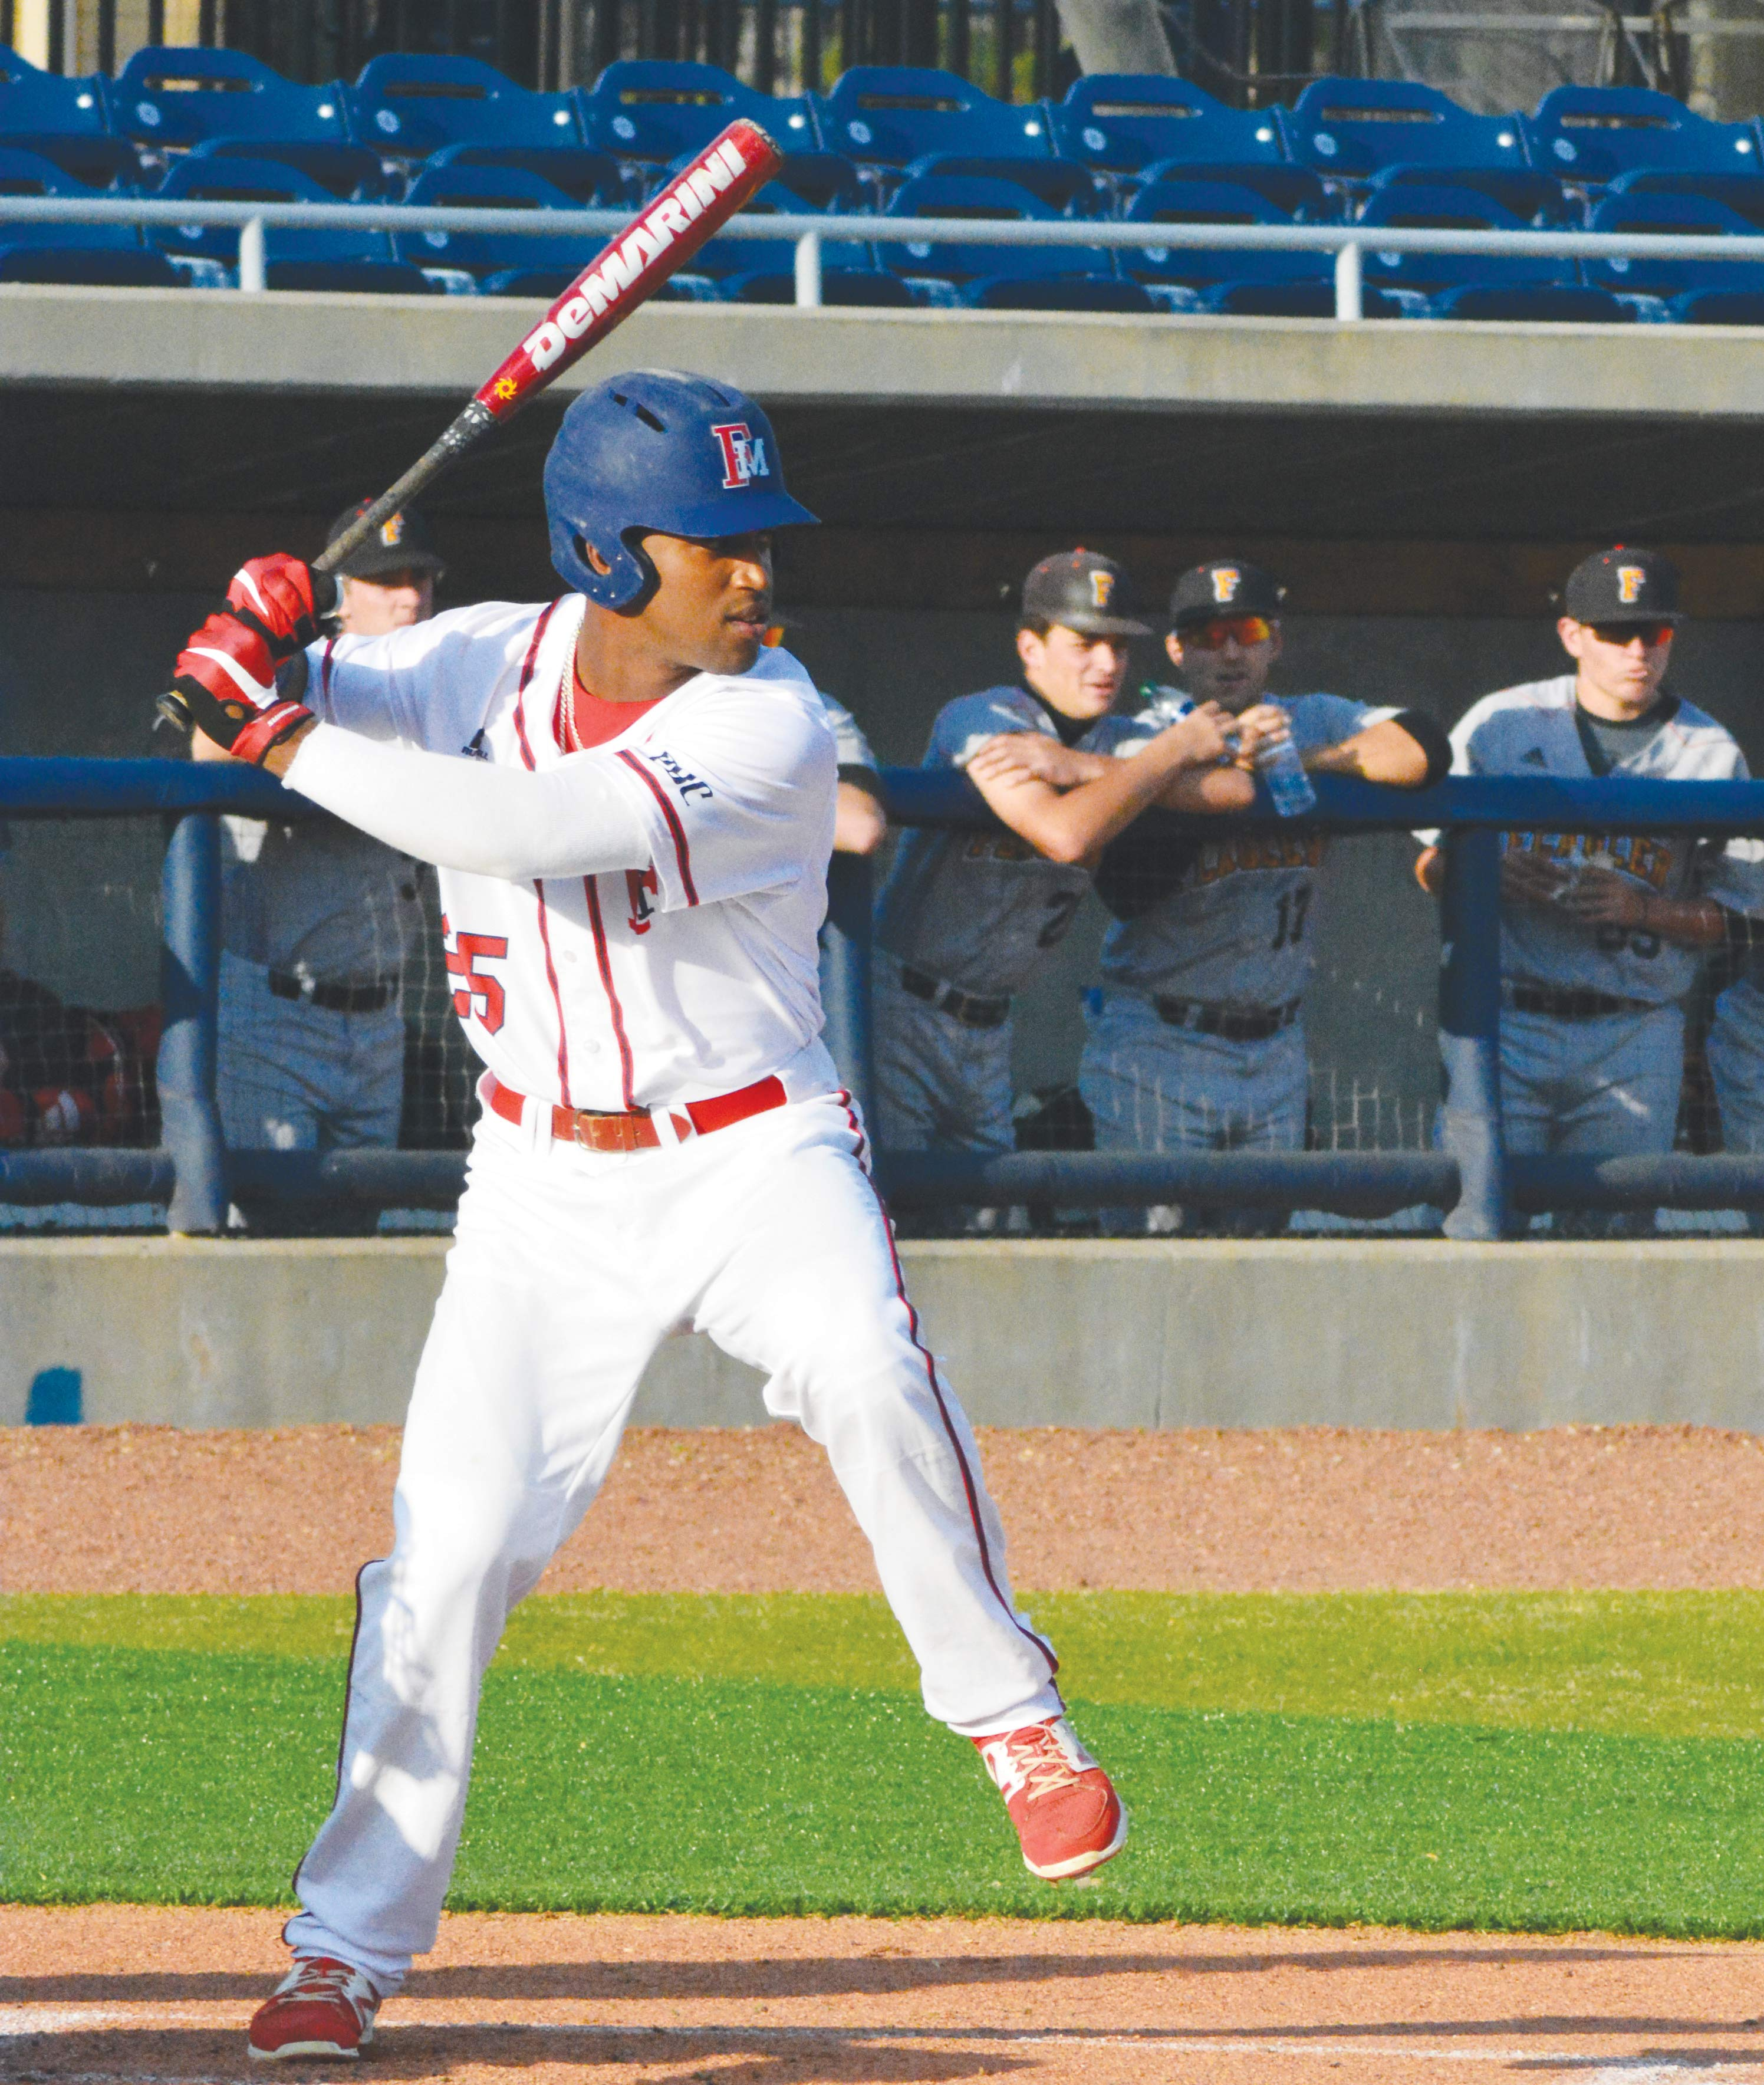 Reese Cooley (25) takes his turn at bat during FMU's double header against Flagler College.